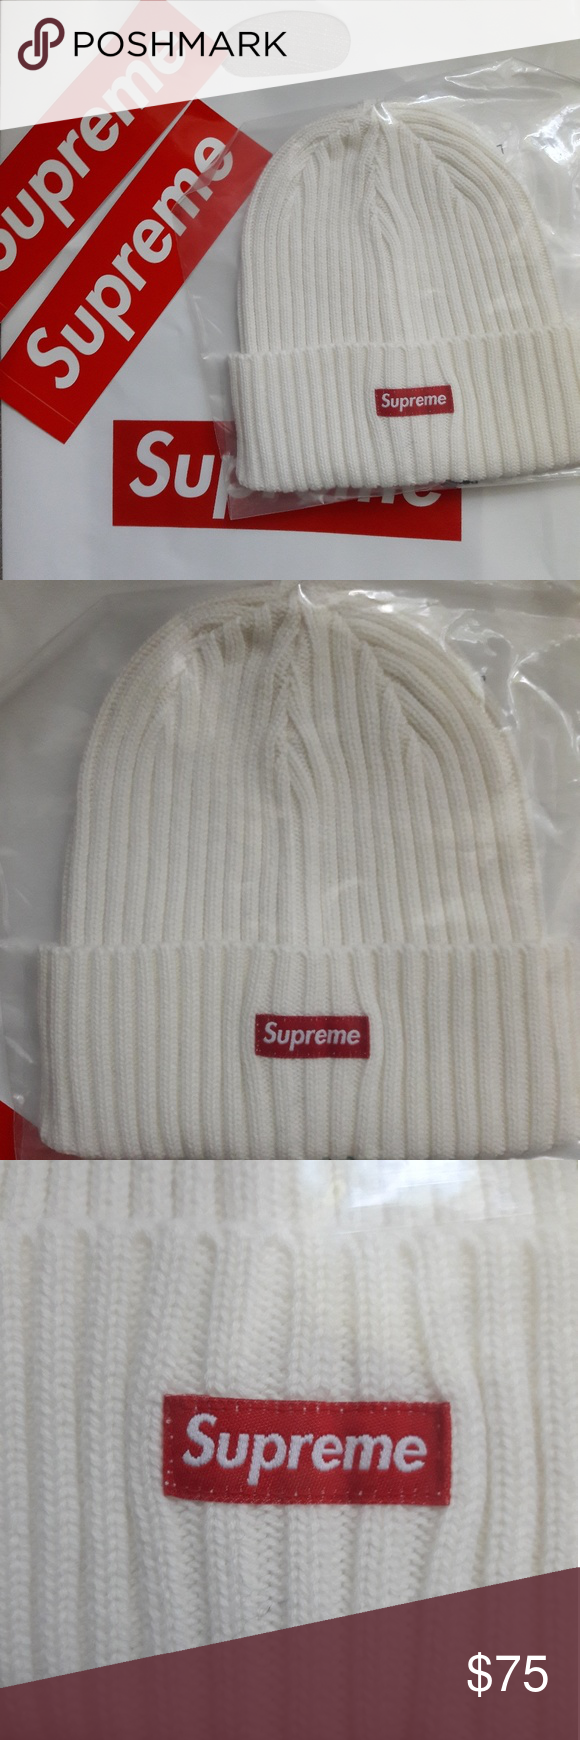 faa6defd58a Supreme Overdyed Ribbed Beanie SS18 White Supreme Overdyed Ribbed Beanie  SS18. One size. Supreme stickers and bag included like in picture.